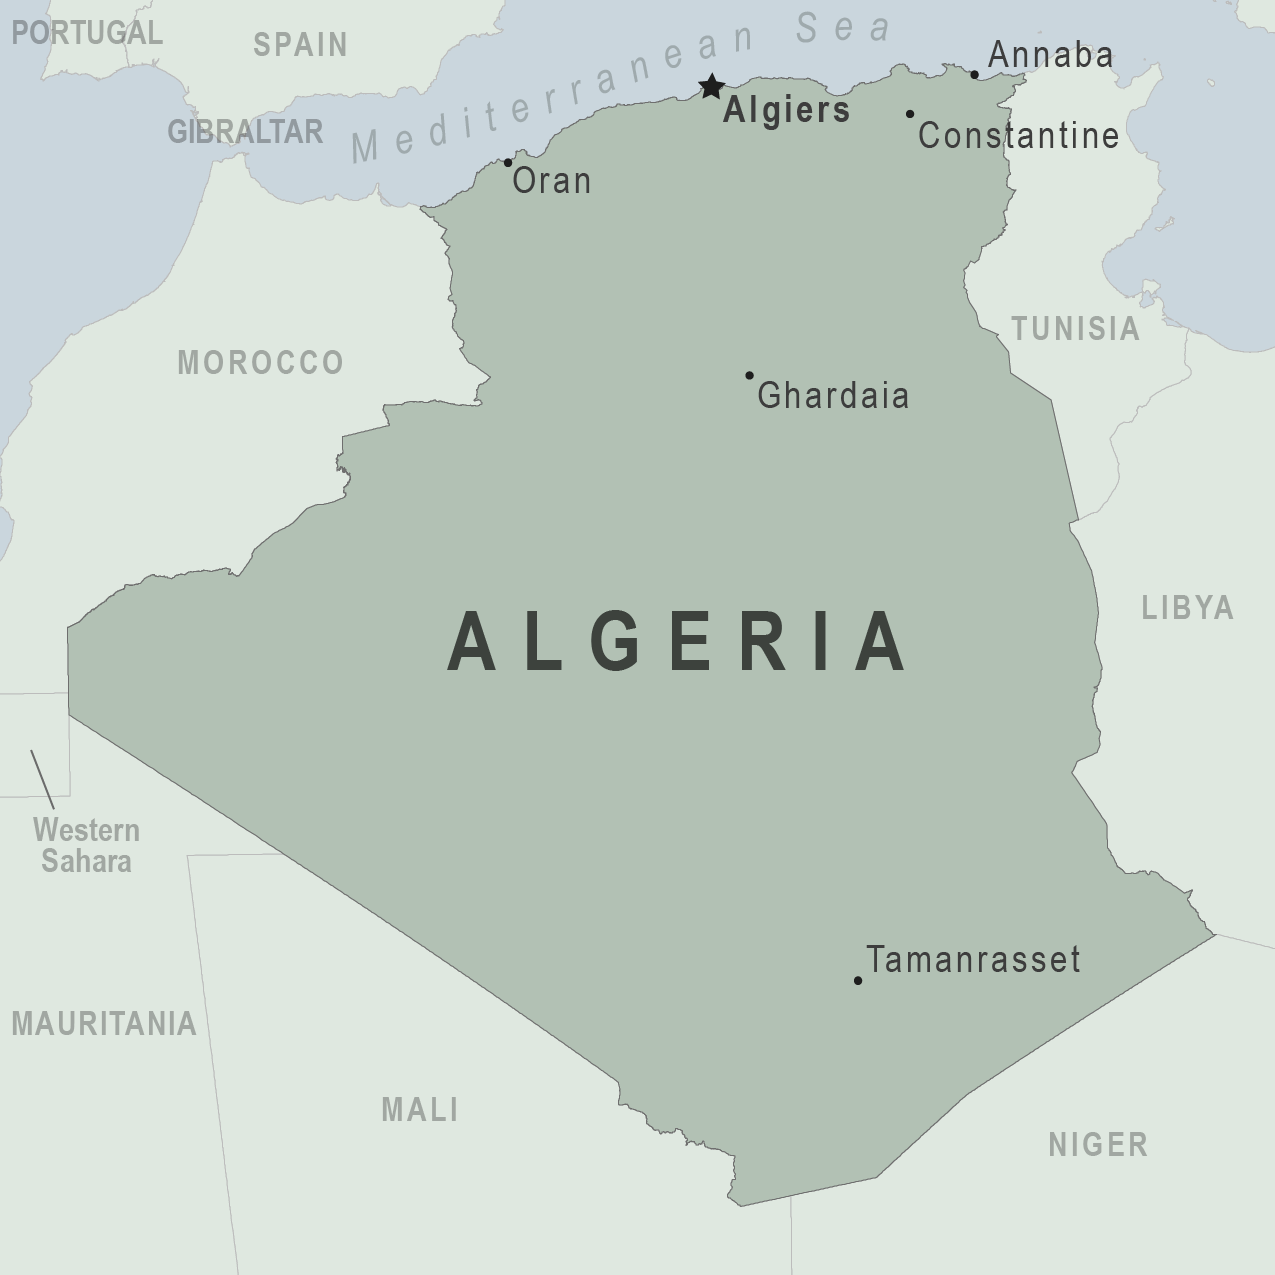 Health Information For Travelers To Algeria Traveler View - Cities map of algeria